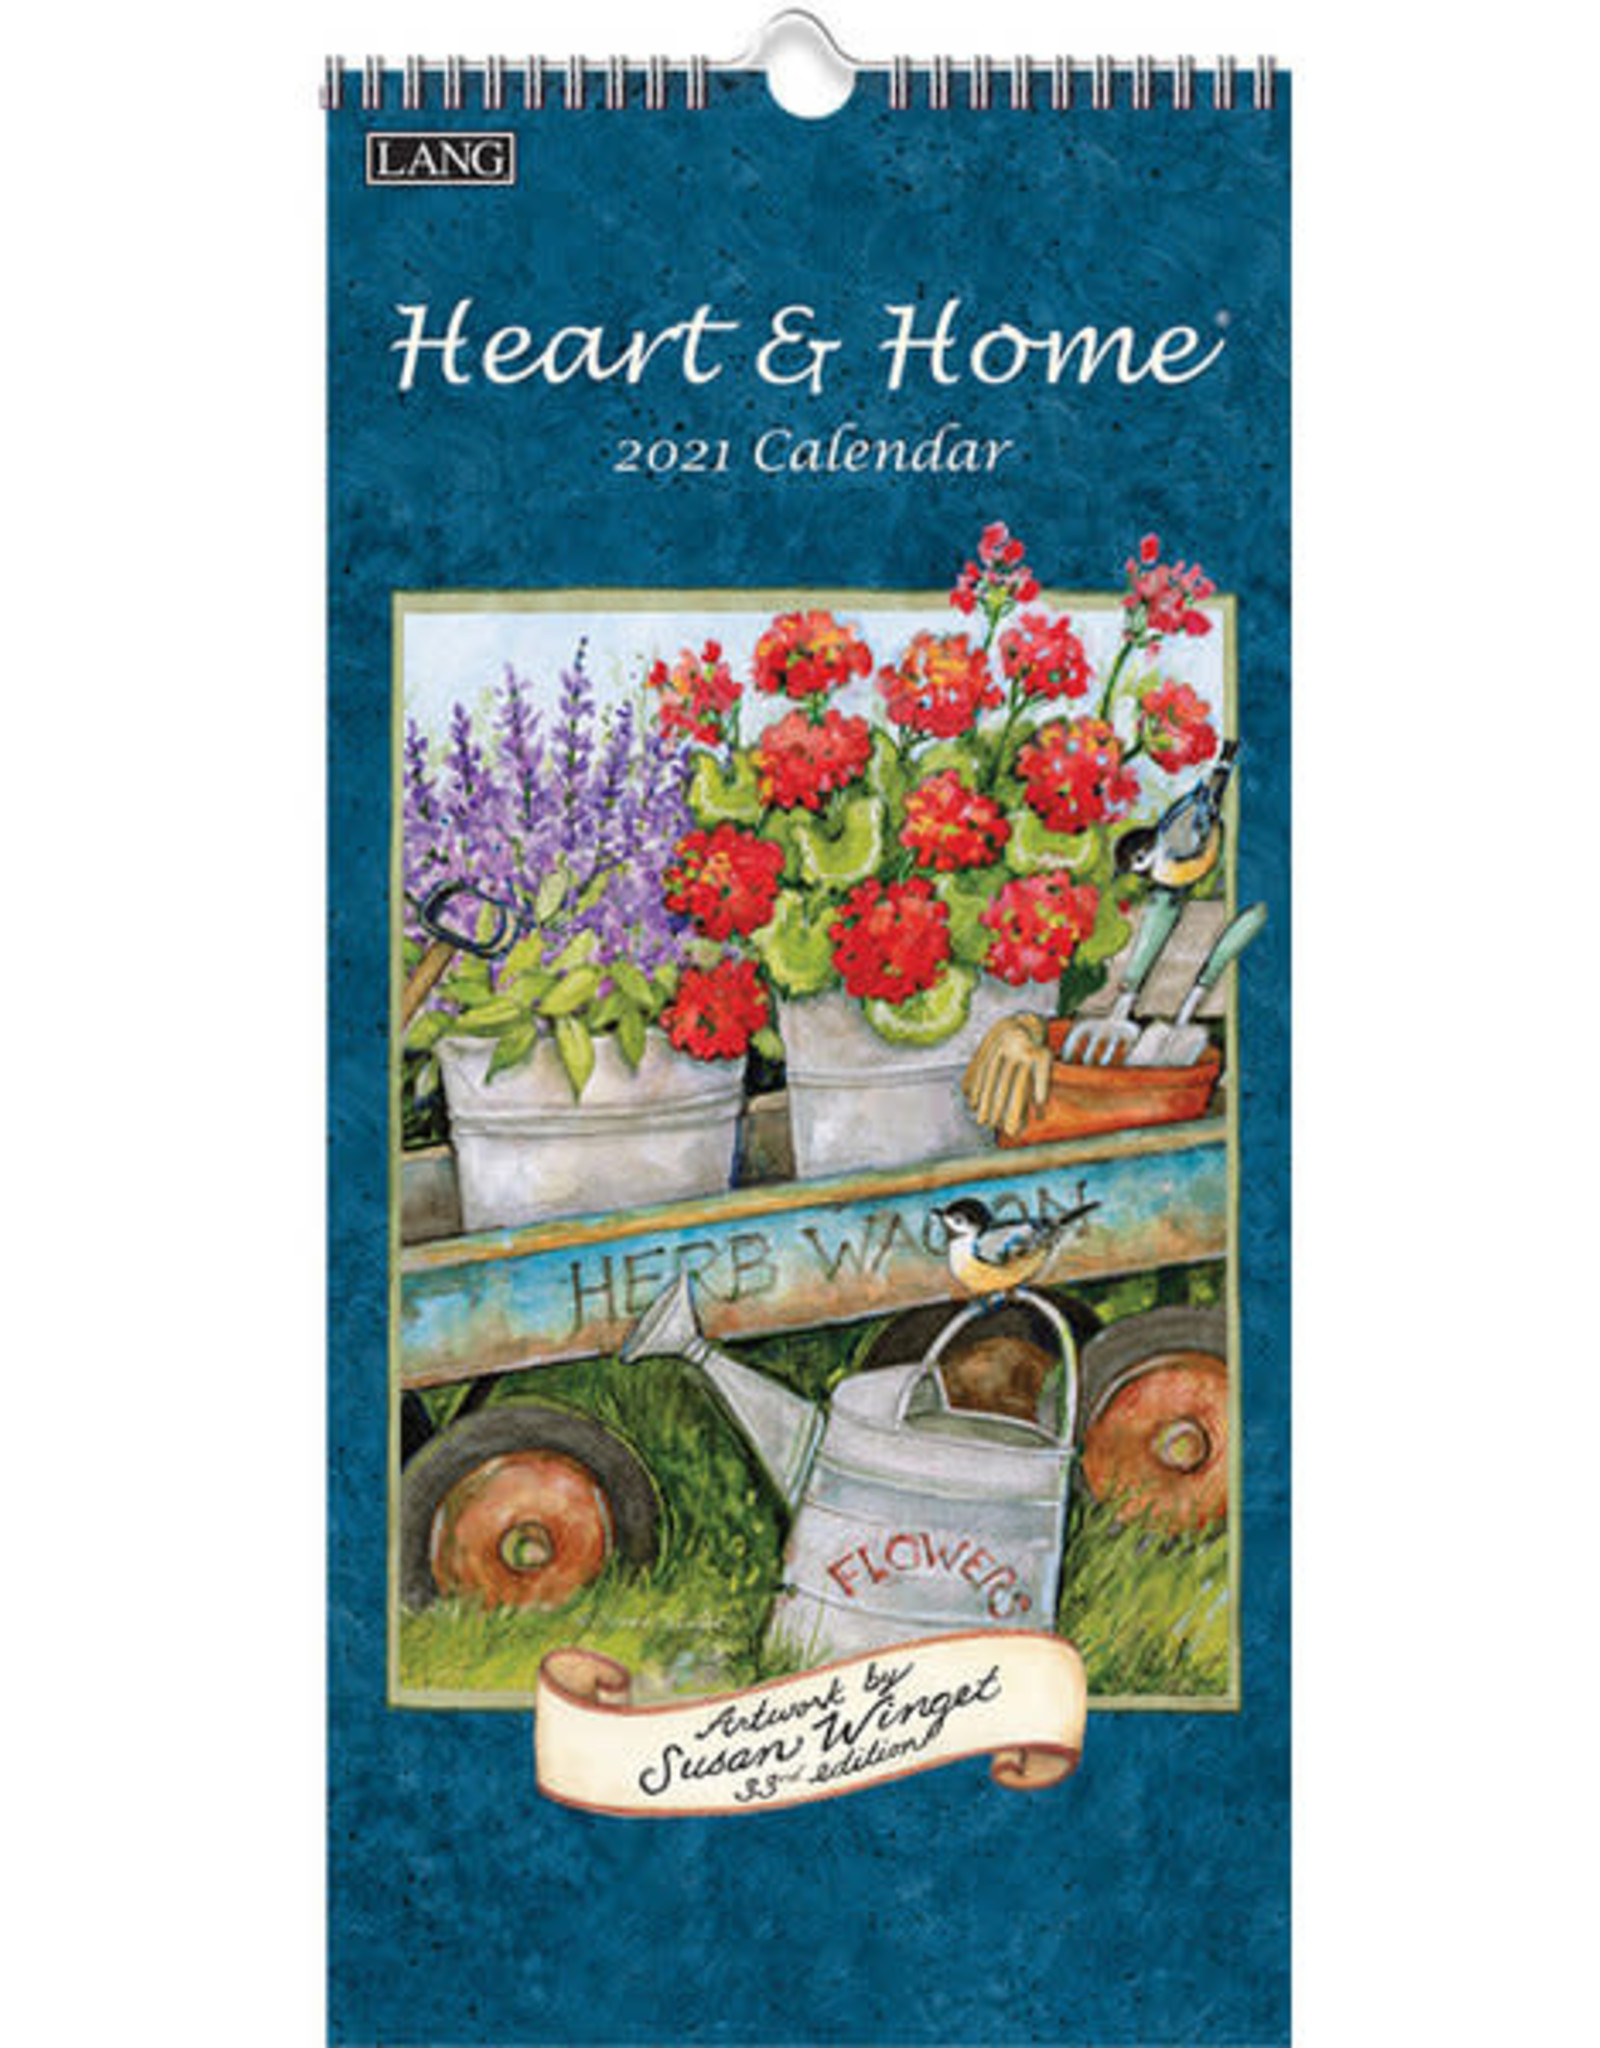 Lang Petit calendrier 2021 Heart & Home